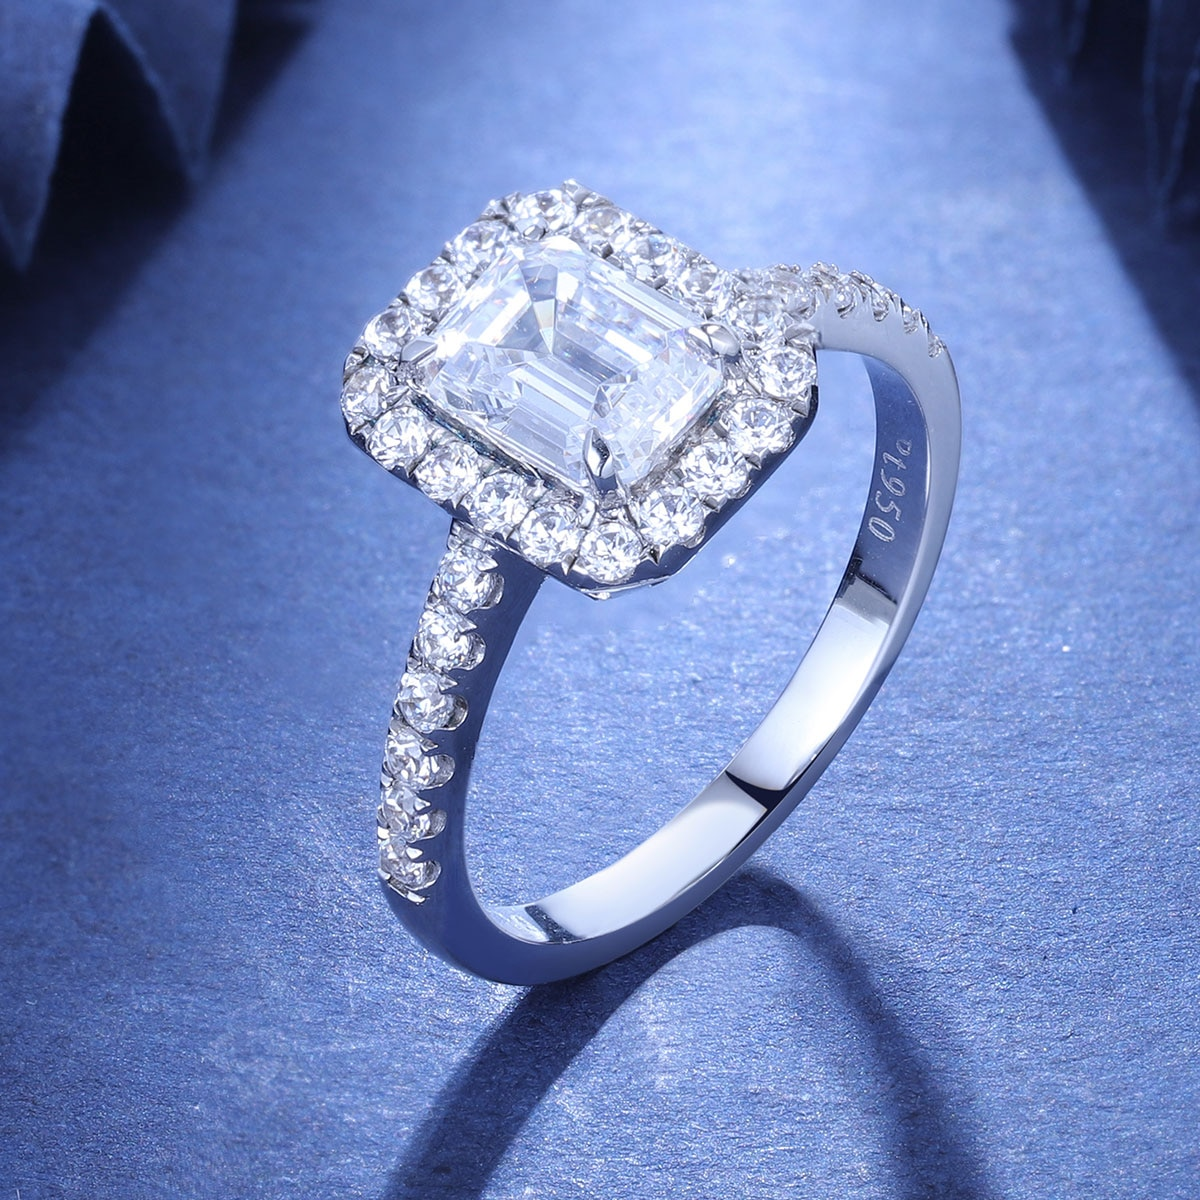 Zhanhao Top Jewelry Factory Jewelry 1.0ct Emerald Cut 925 Silver Women Diamond Ring With Stunning Color Stone